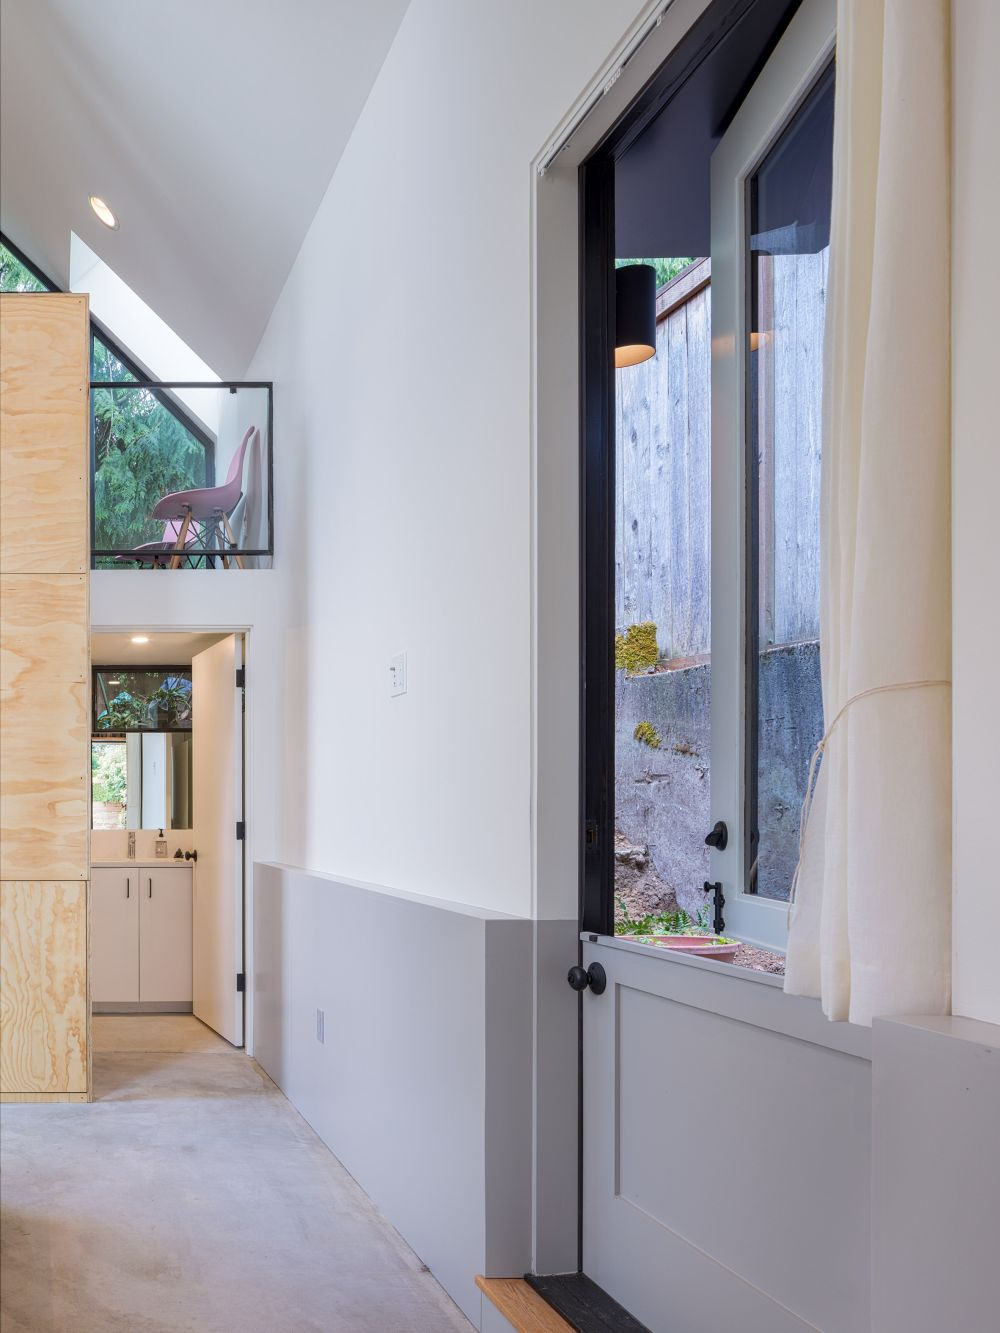 the bathroom is small and is also the only fully enclosed space inside the original structure and the new addition